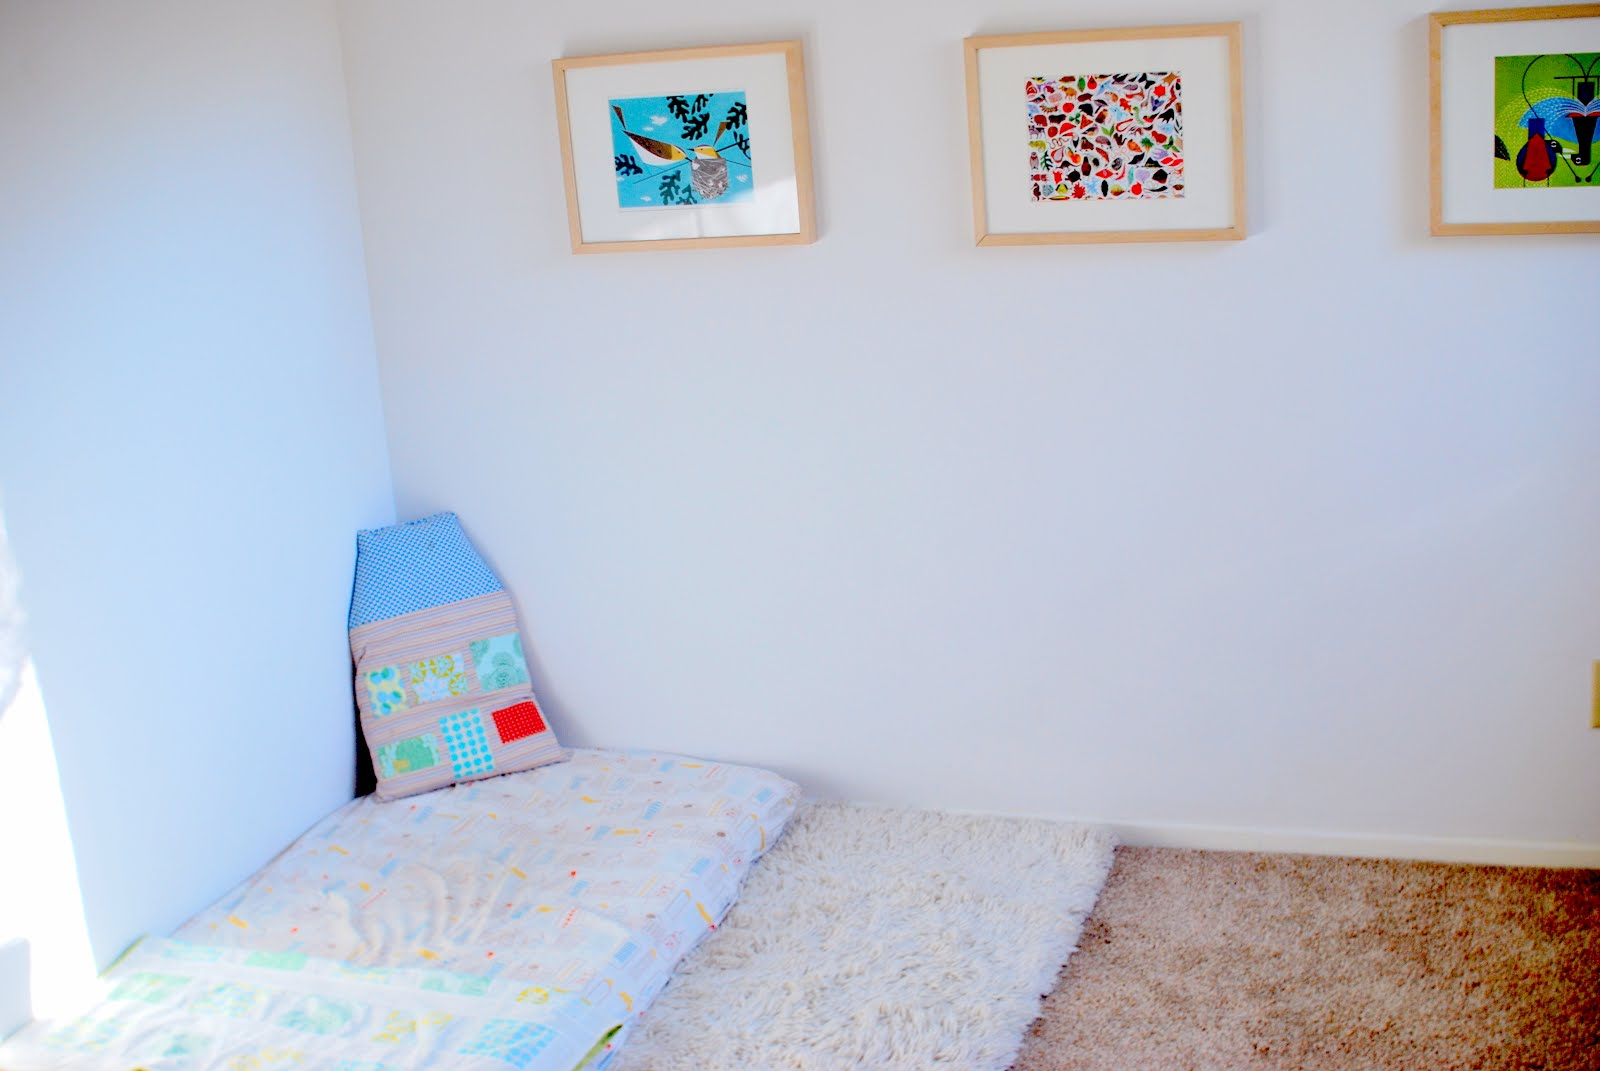 Feeding the soil montessori bedroom for a one year old for 1 year old bedroom ideas